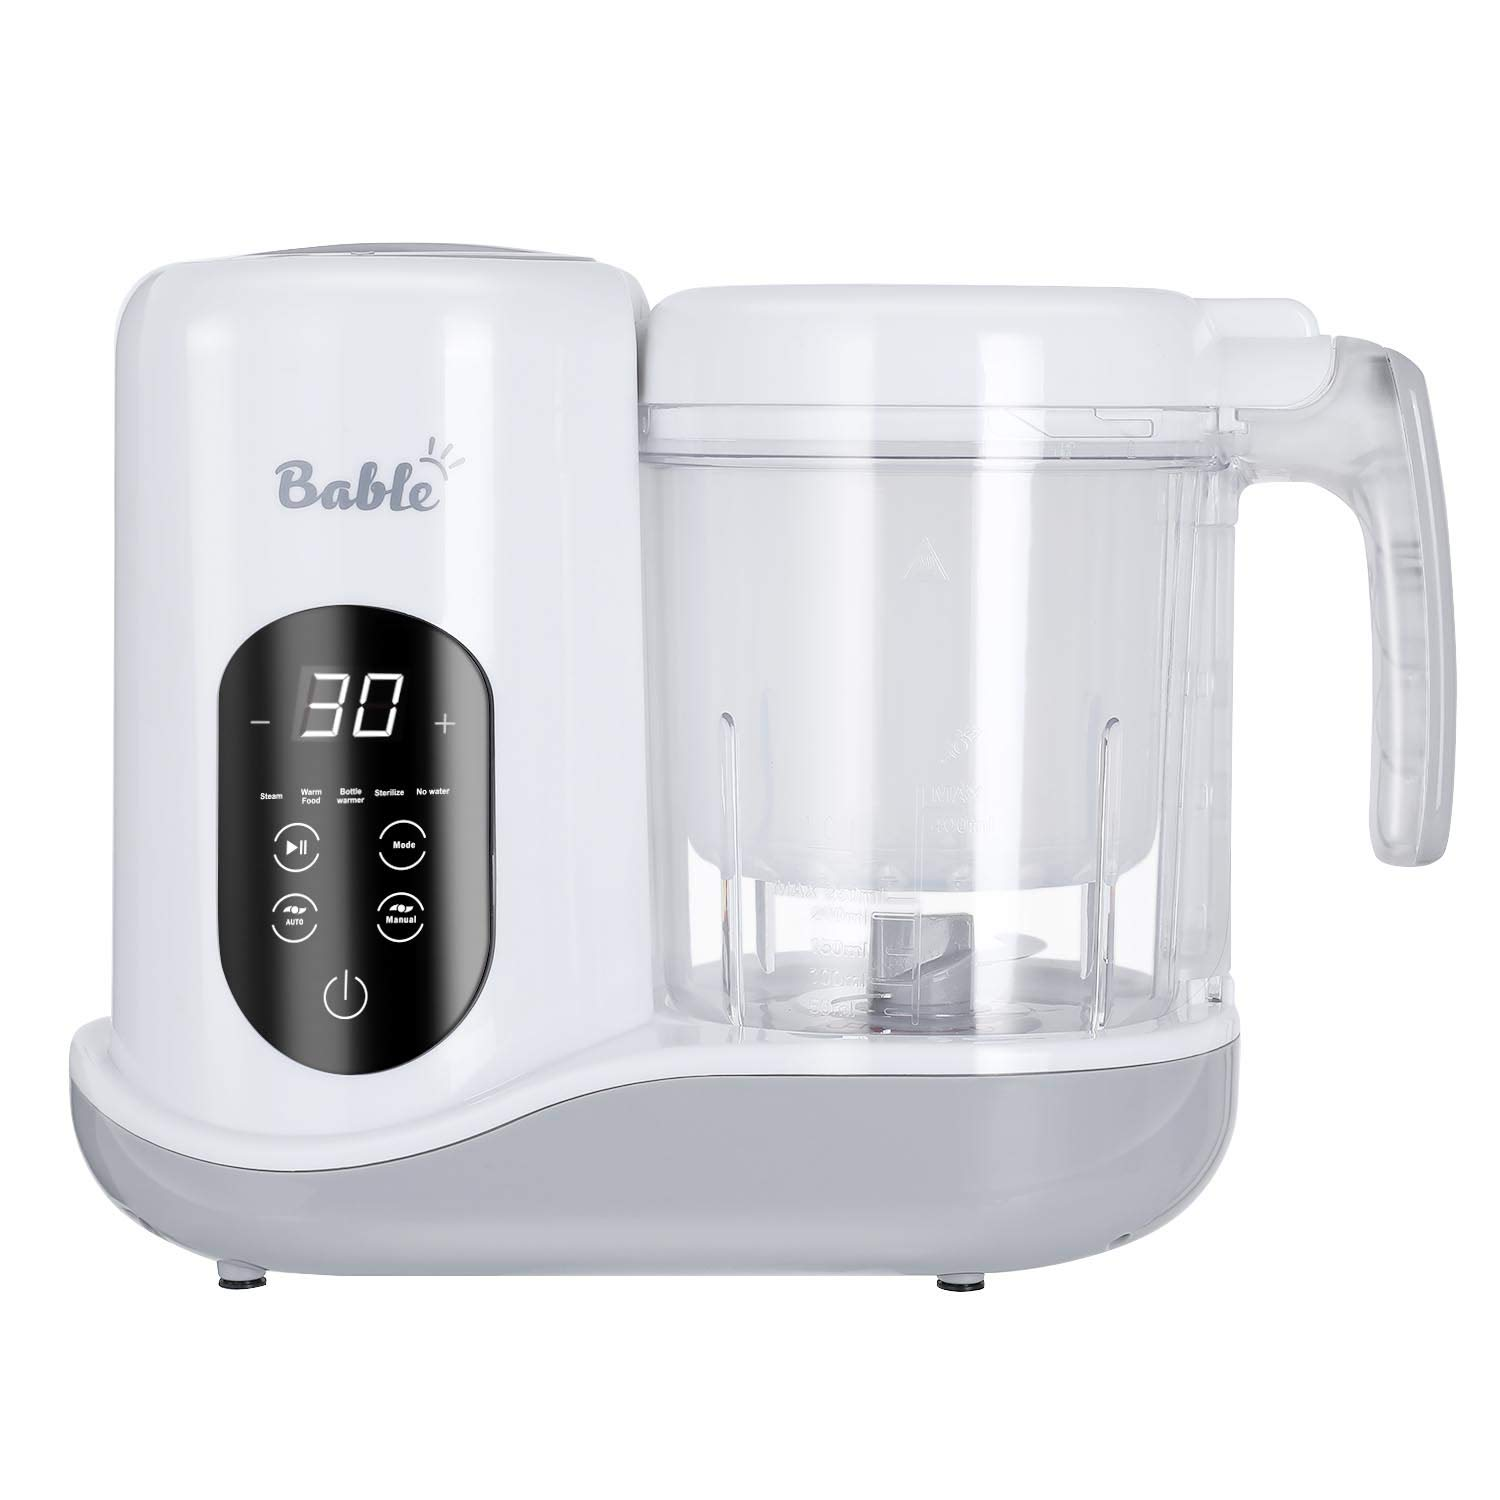 Bable 6 in 1 Baby Food Maker for Toddlers - Multifunctional Food Processor with Steam, Blend, Chop, Sterilize, Warm Milk, Warm Food, Touch Control Panel, Auto Shut-Off